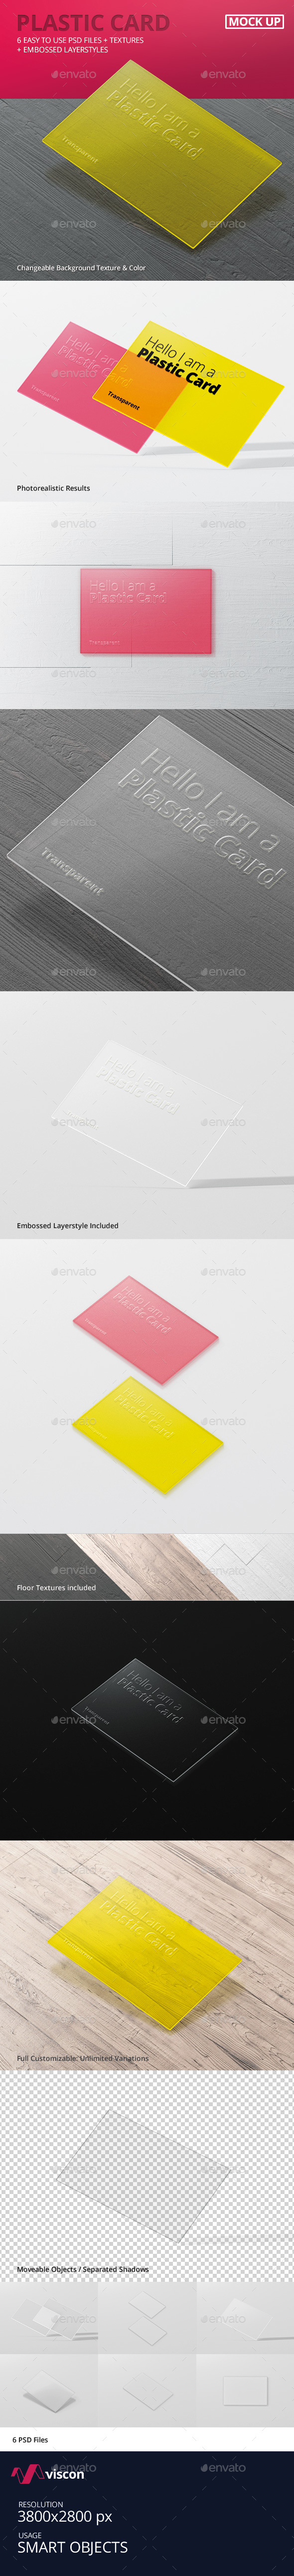 Transparent Business Card Mock-Ups - Business Cards Print